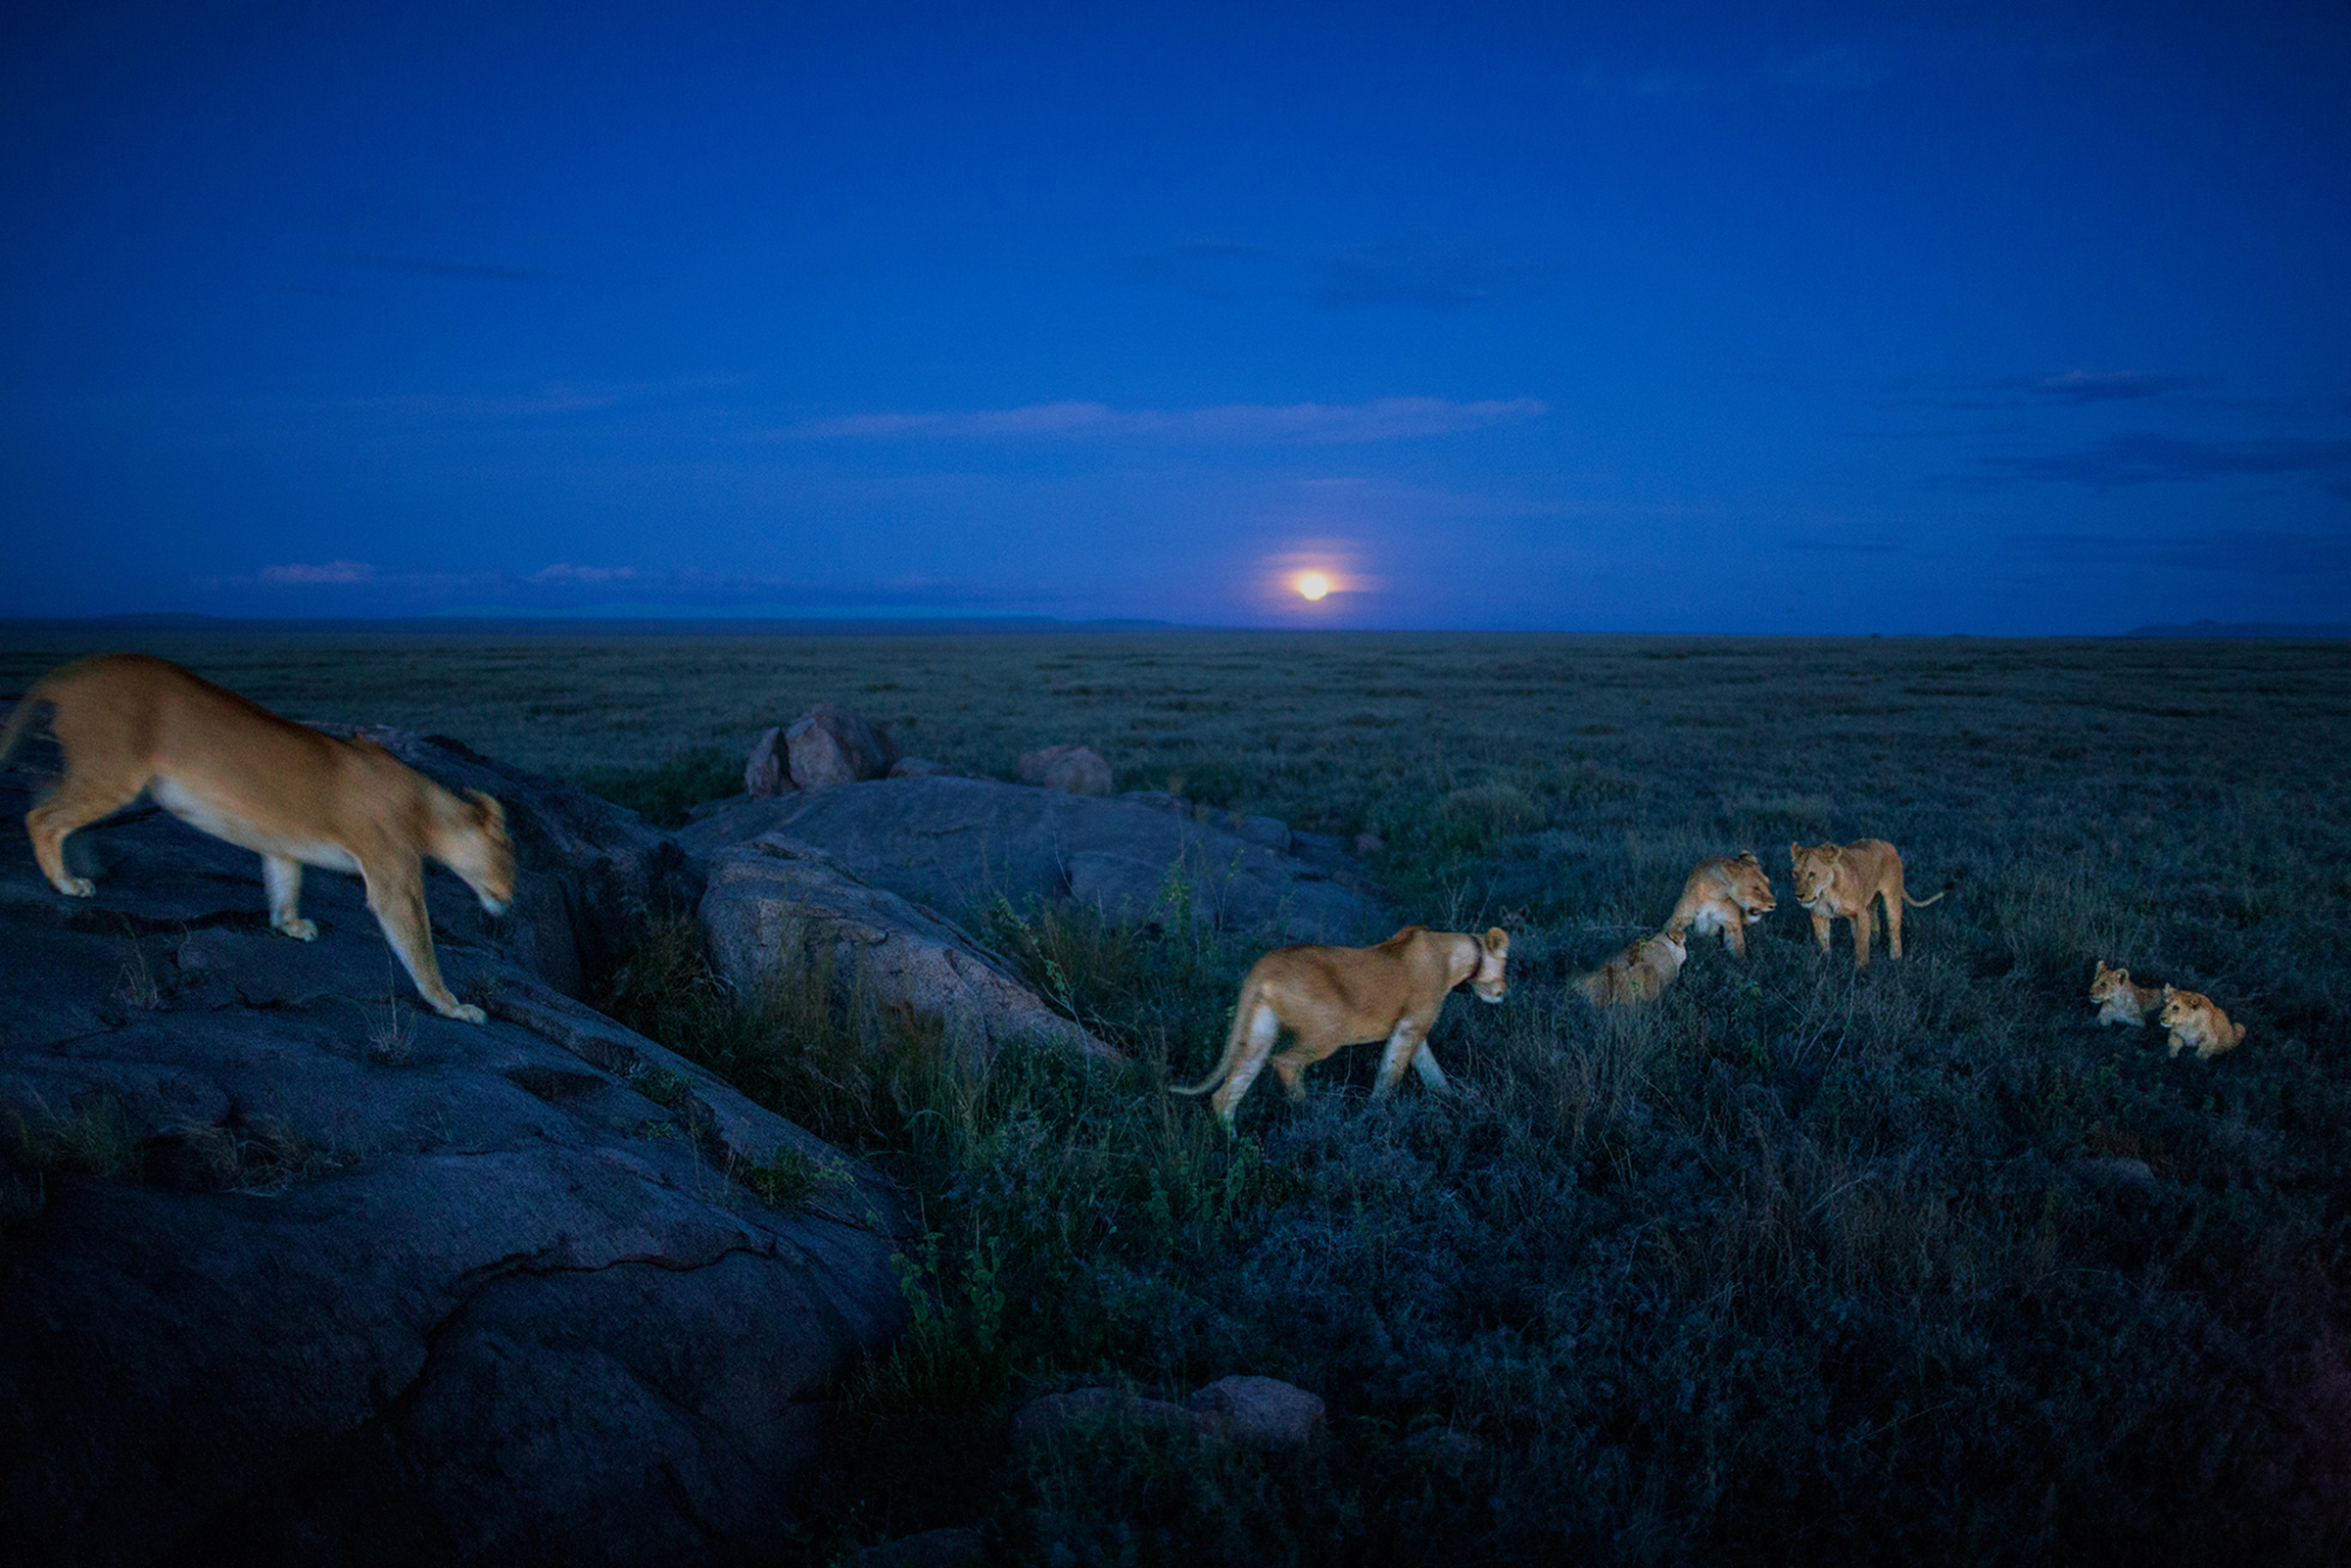 Dusk is a busy time for the Vumbi pride. As the moon rises, the lionesses rouse themselves from their afternoon naps, tussle in the grass, and set out on the evening hunt.